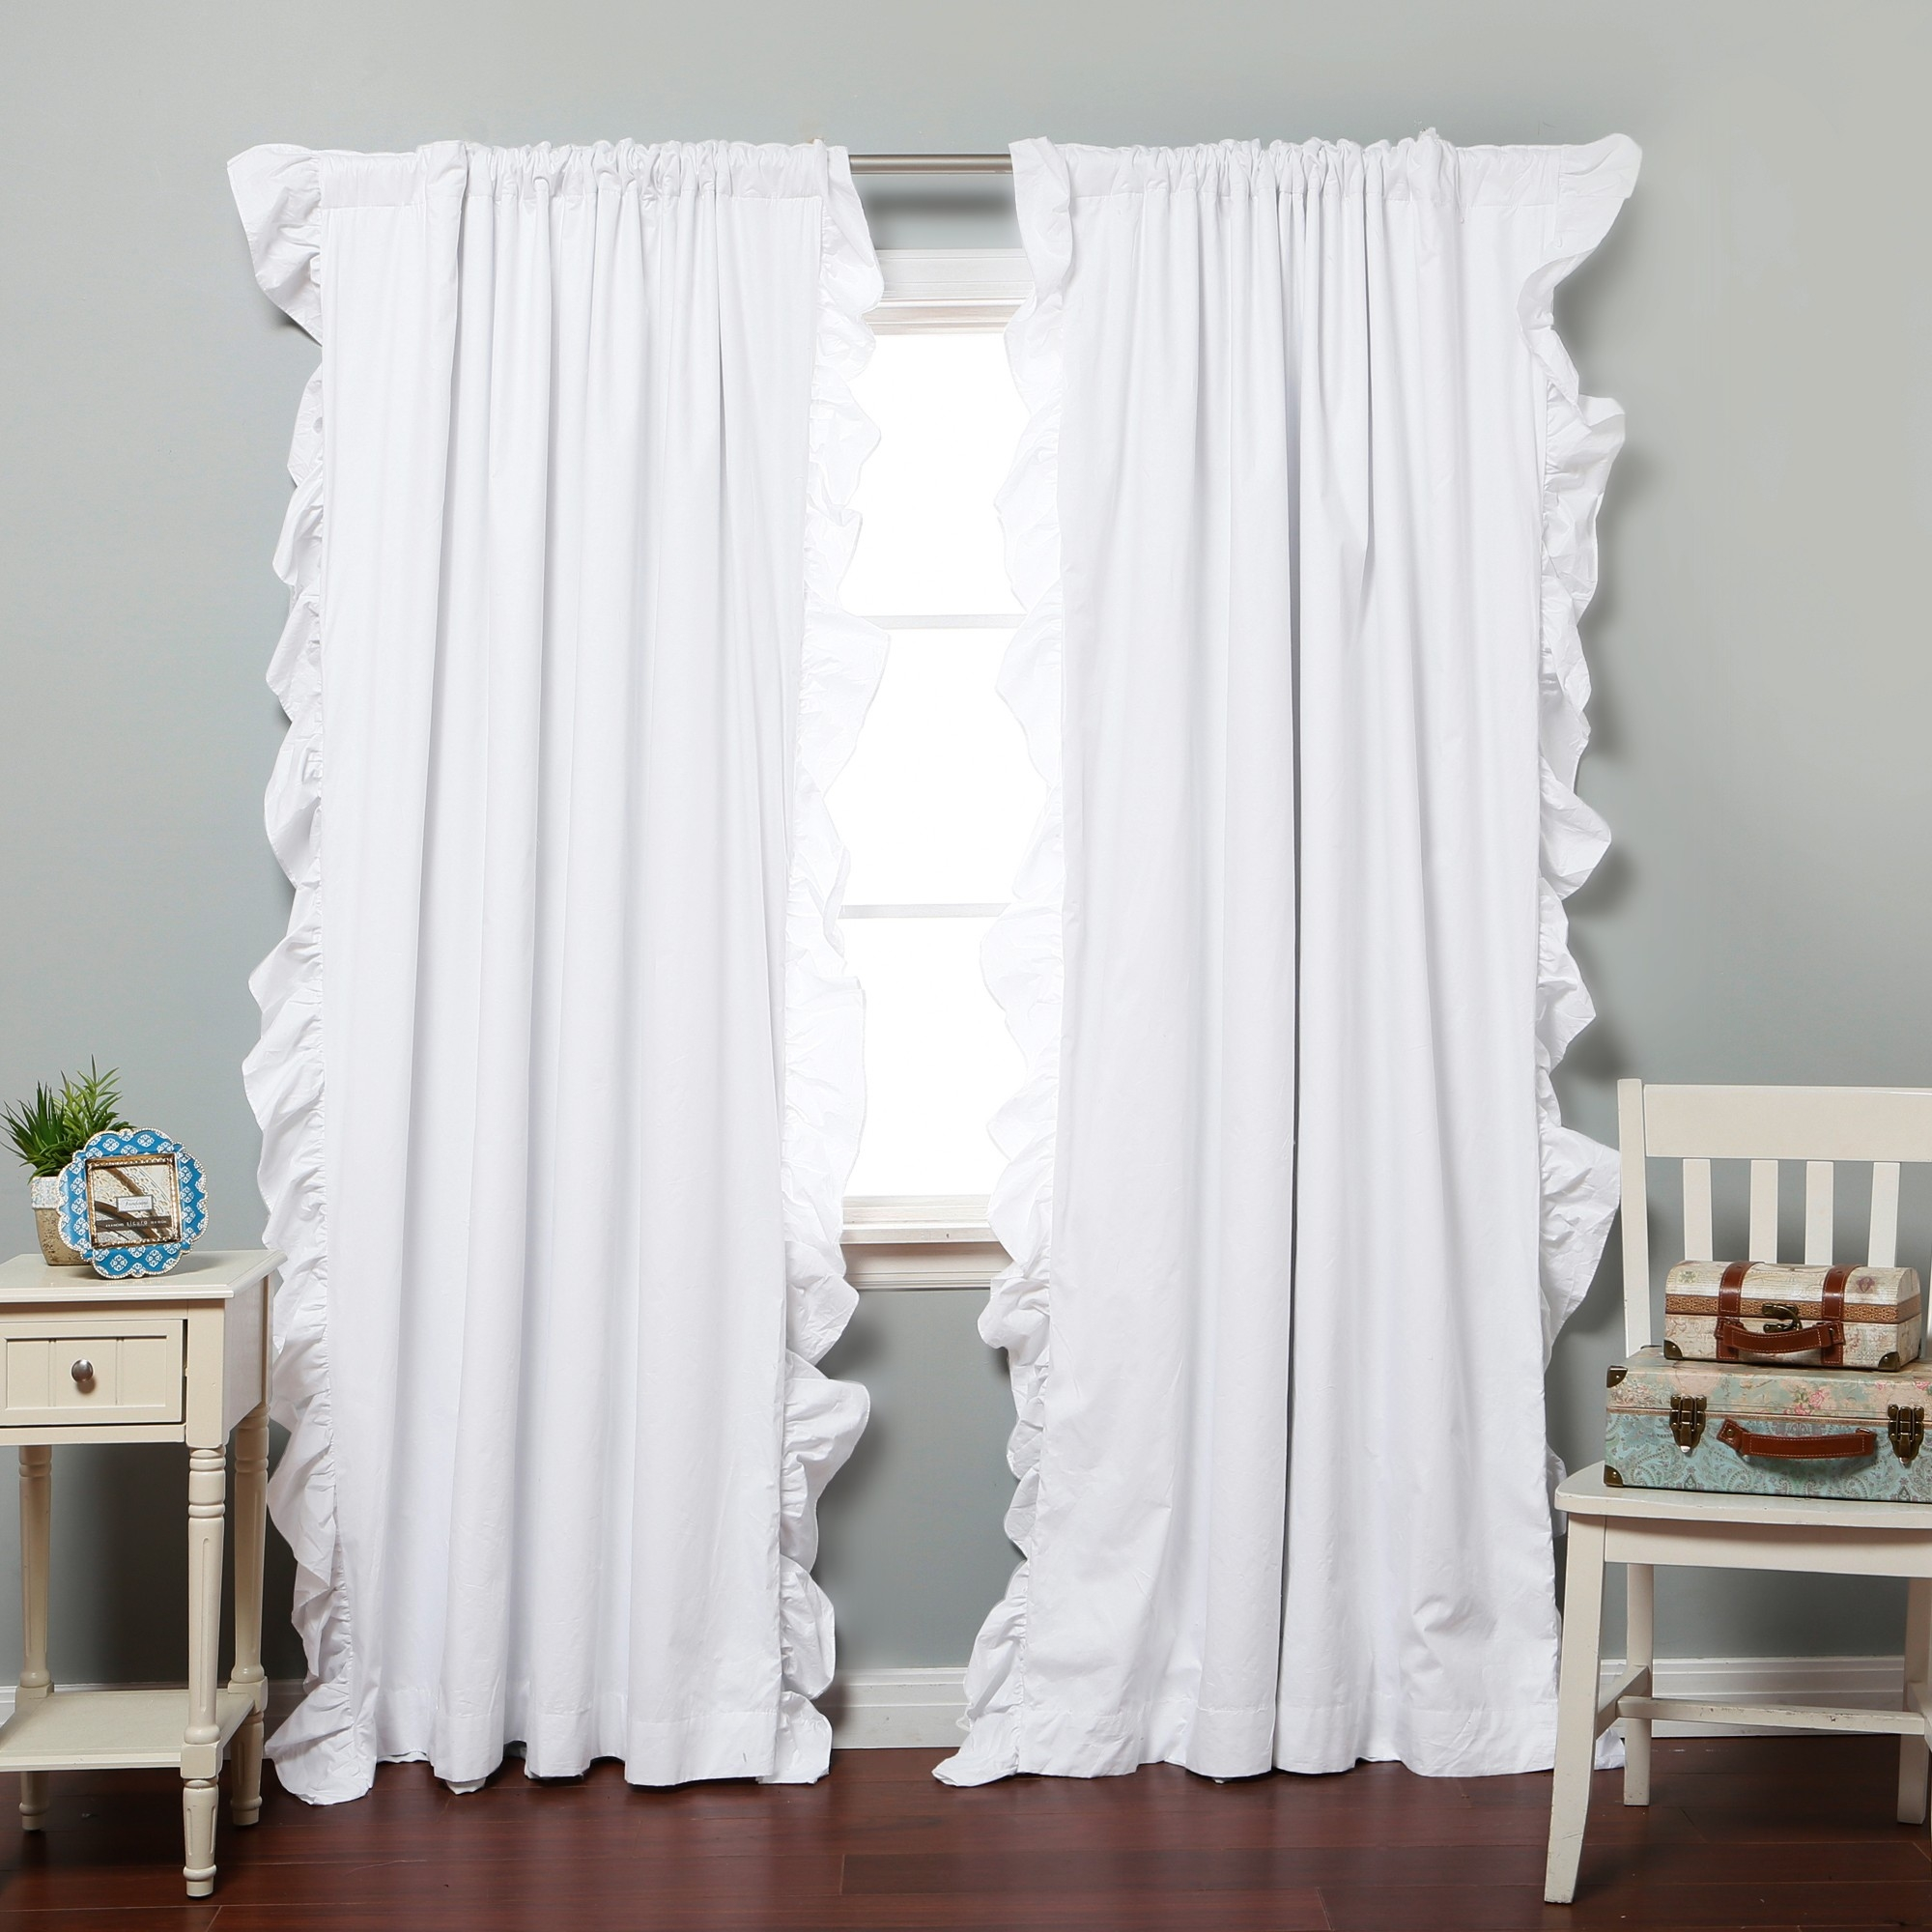 Curtains White Ruffle Curtain Panel Shower Curtain Ruffle Within White Ruffle Curtains (View 5 of 25)